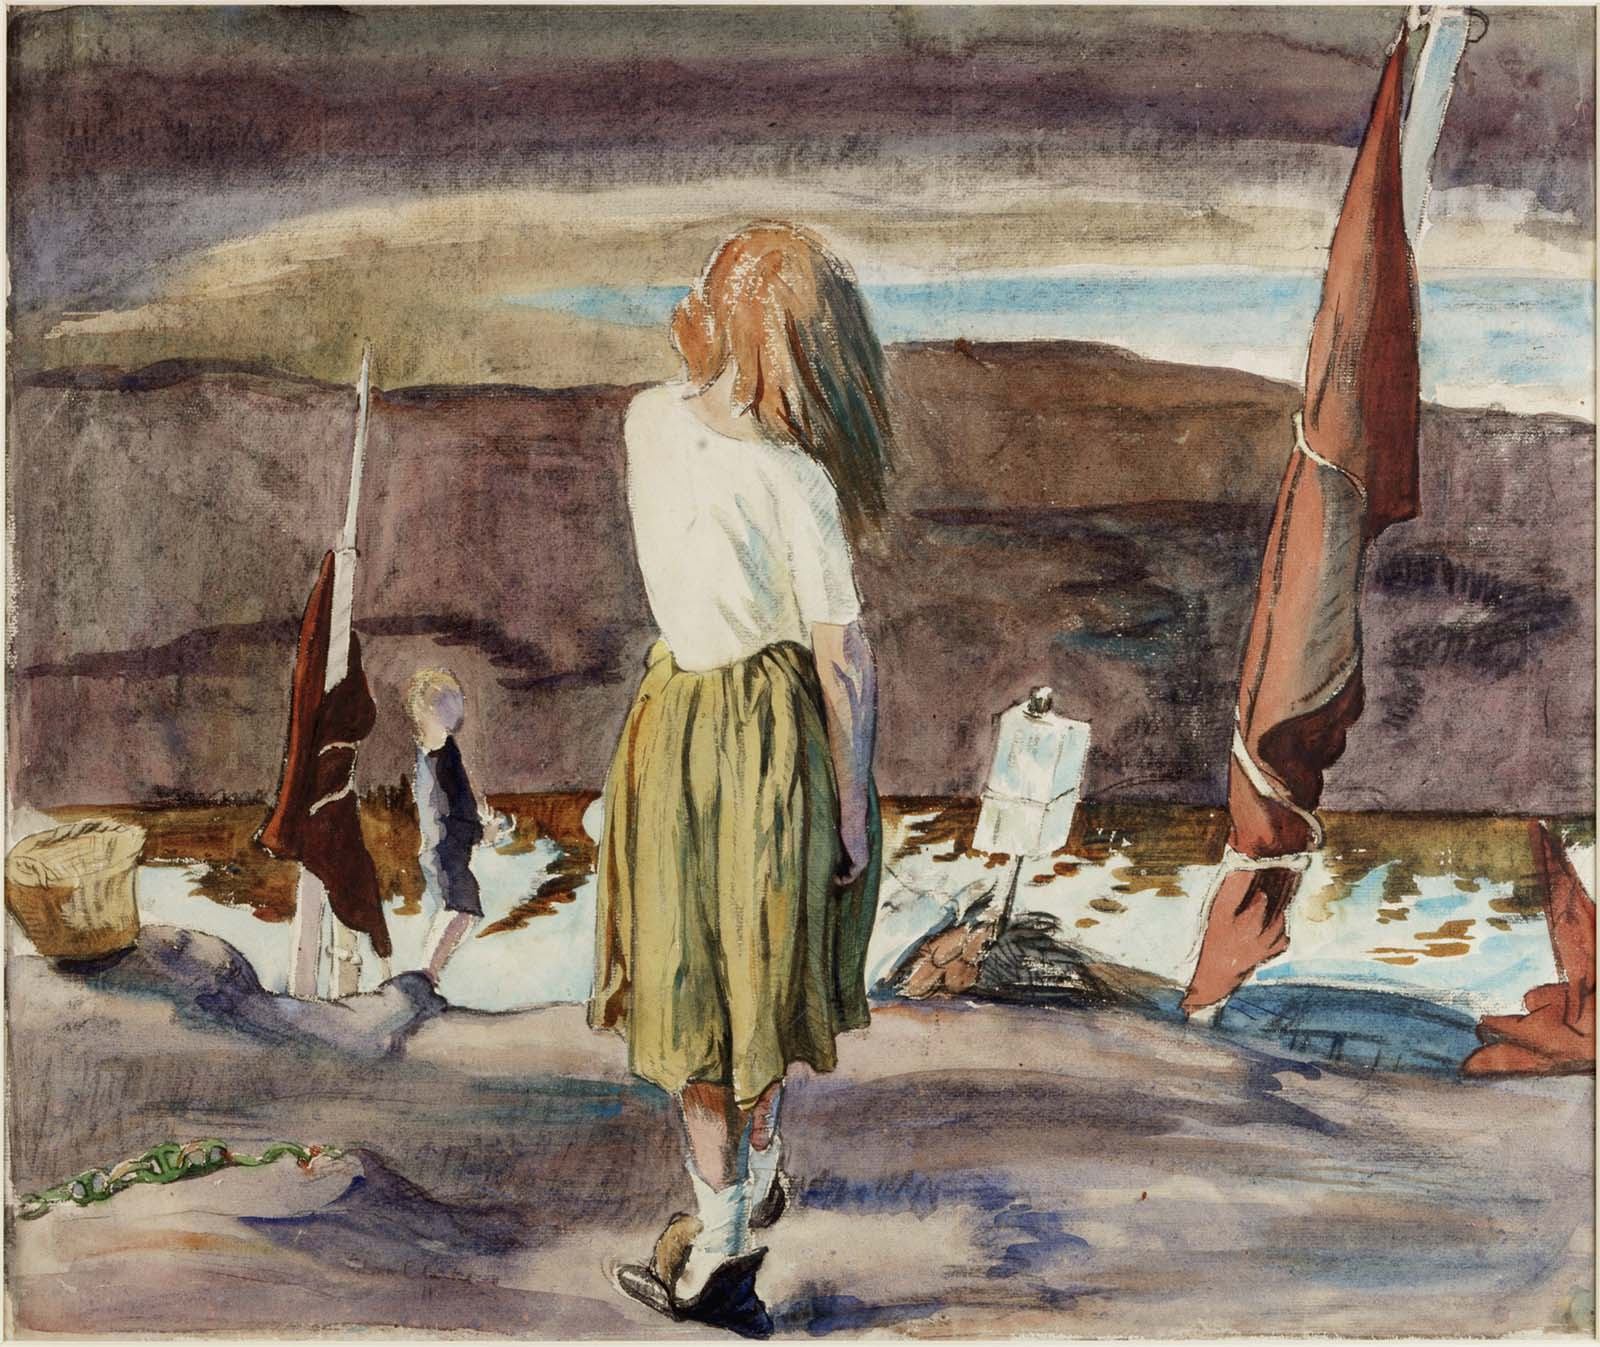 watercolour painting of a young female seen from behind looking out onto a semi-desolate landscape